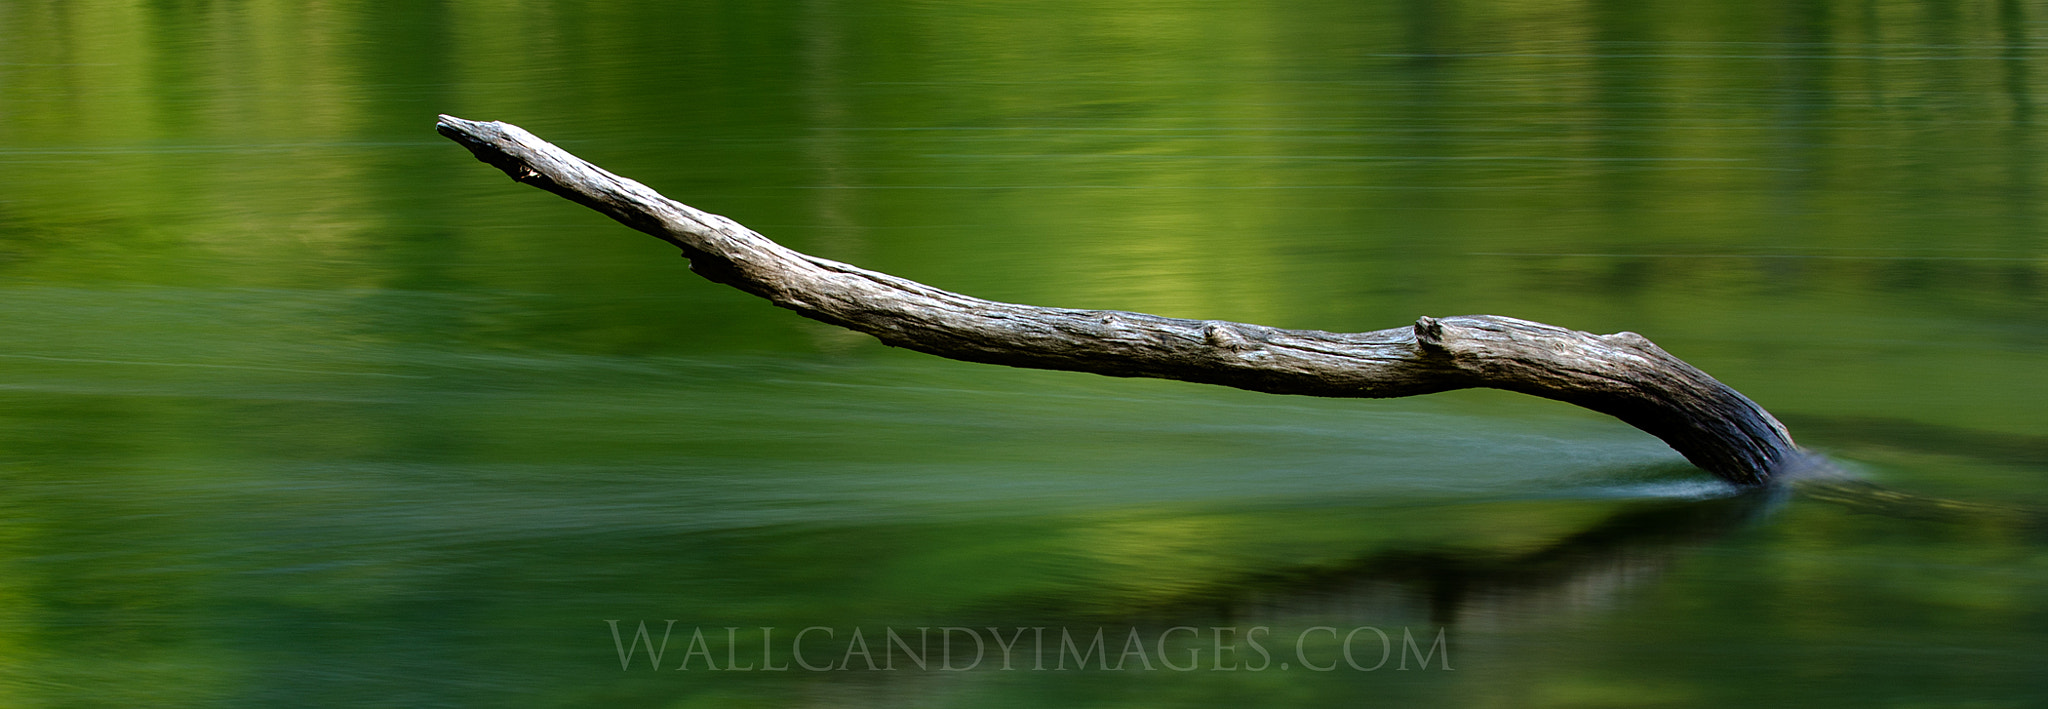 Photograph Tranquillity  by Dustin Penman on 500px